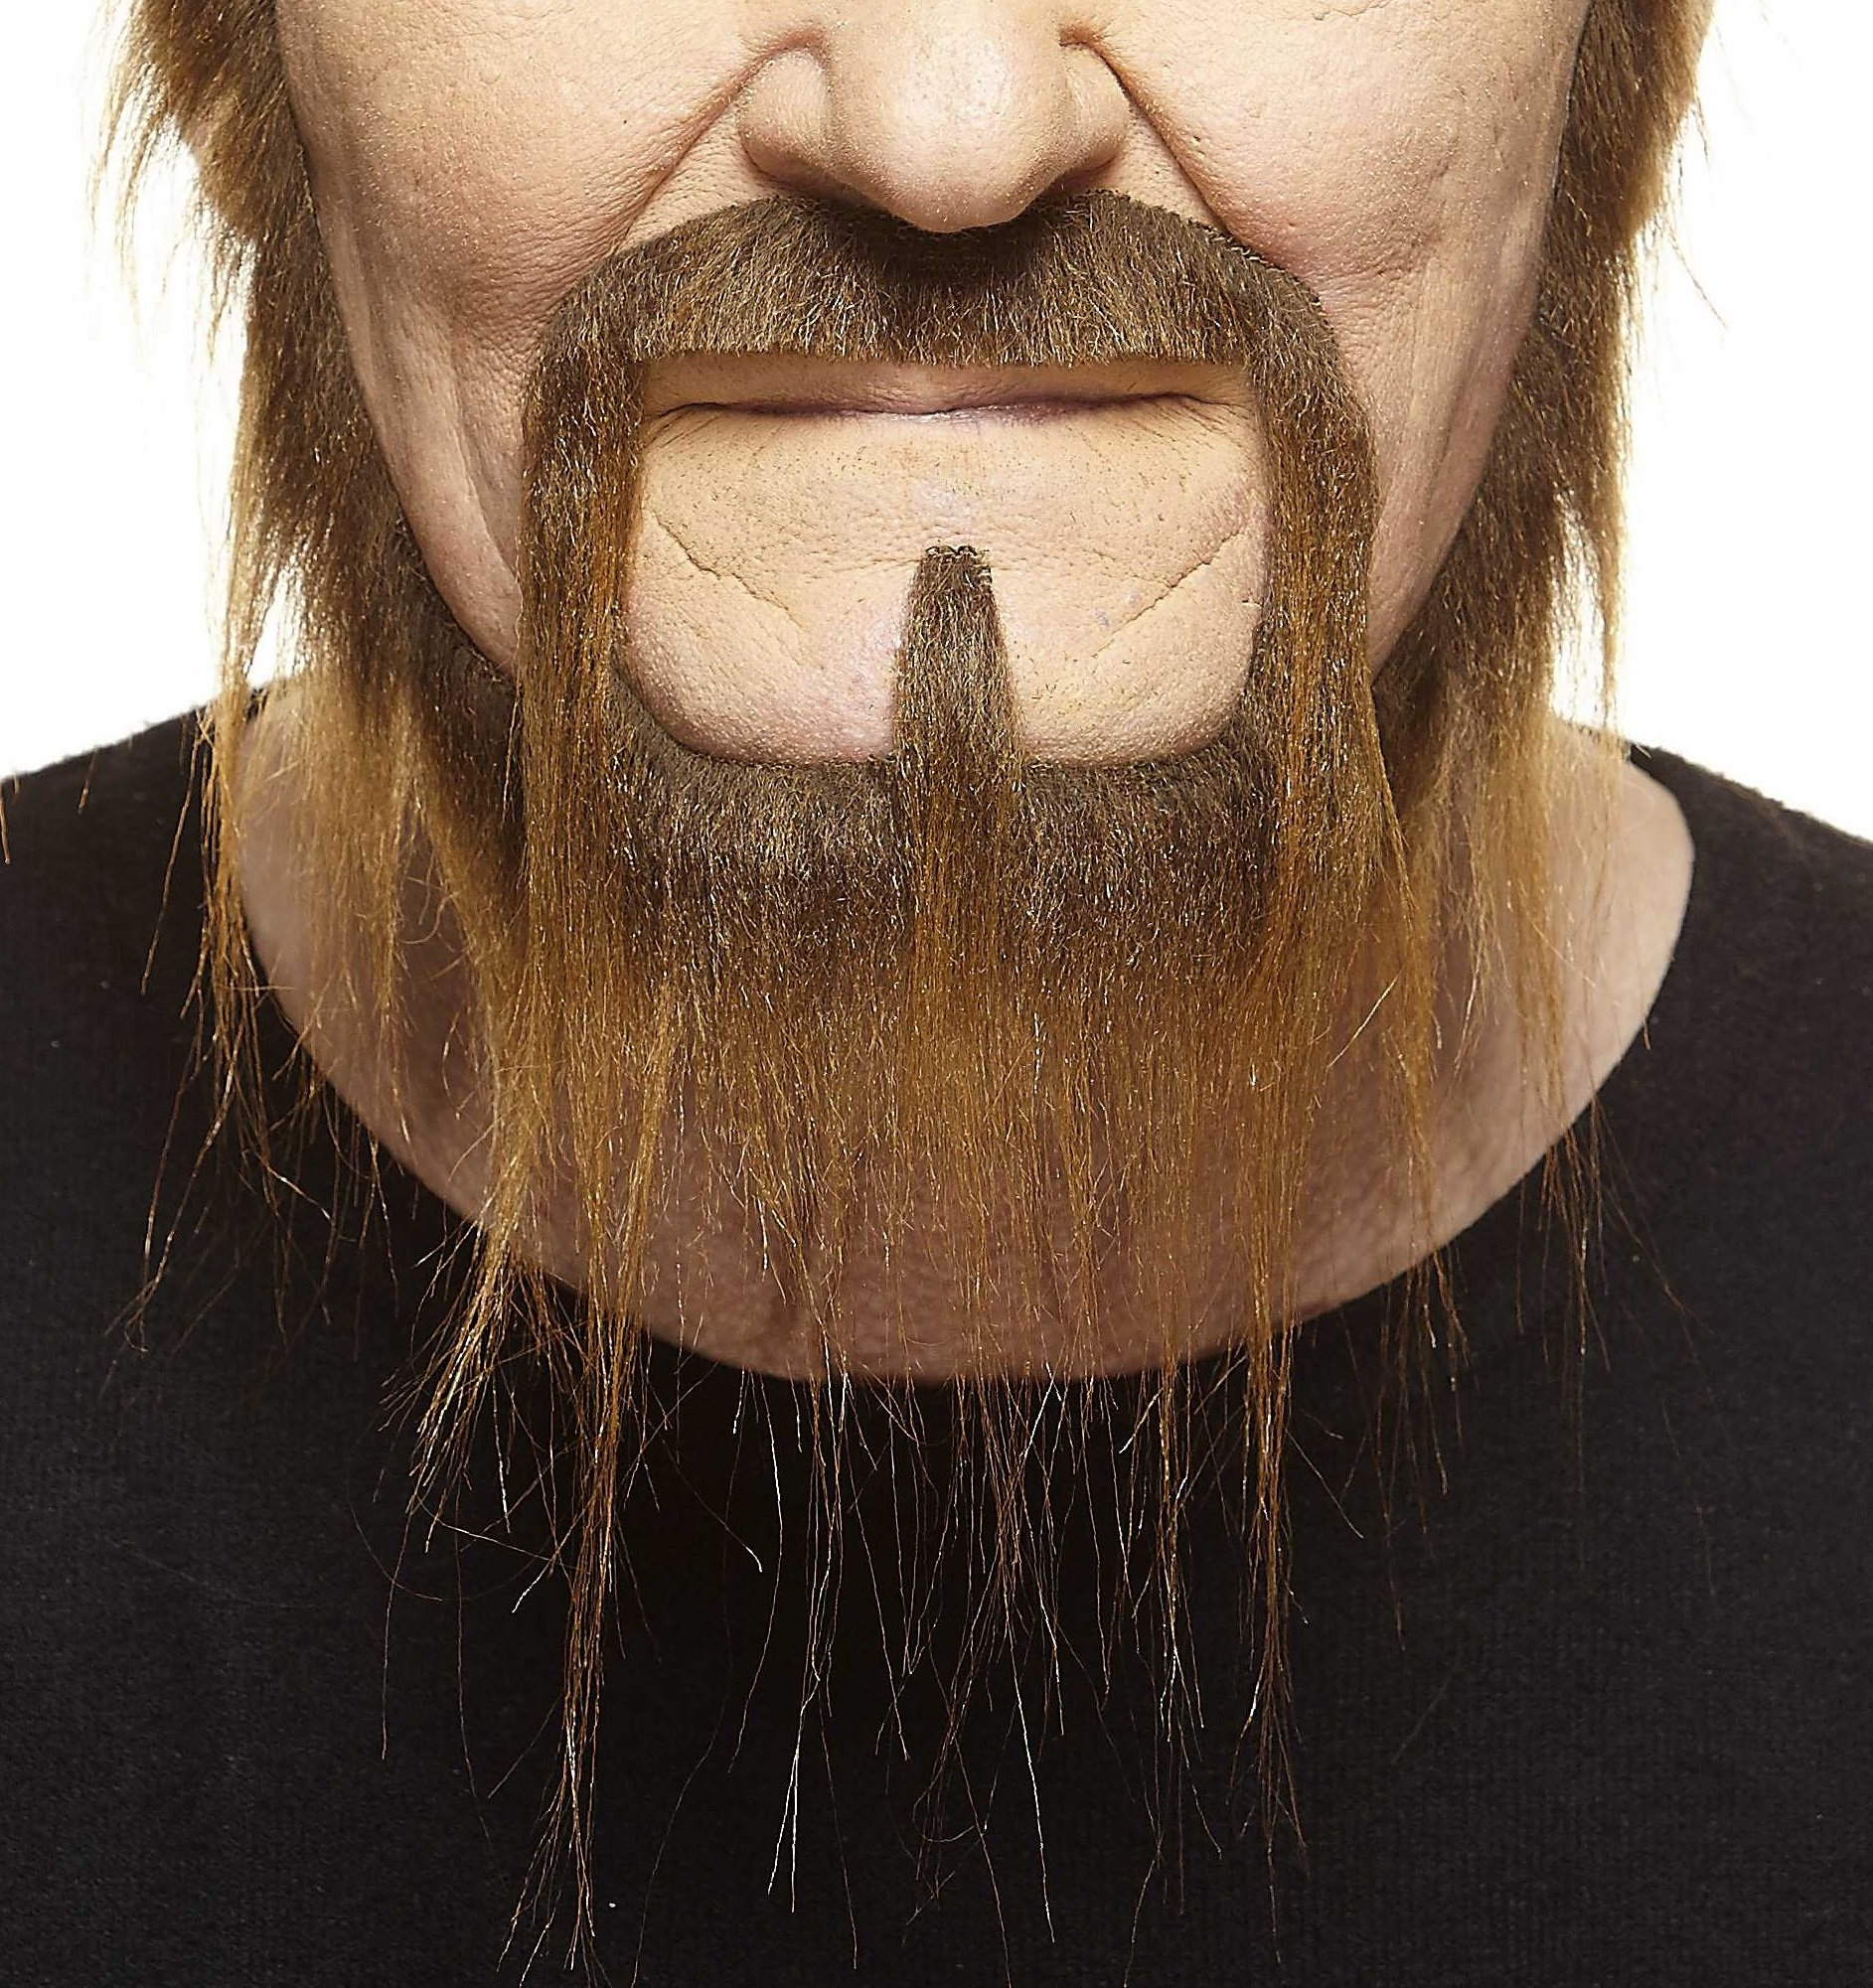 Mustaches Self Adhesive, Novelty, Long Squatter Fake Beard, False Facial Hair, Costume Accessory for Adults, Brown Color